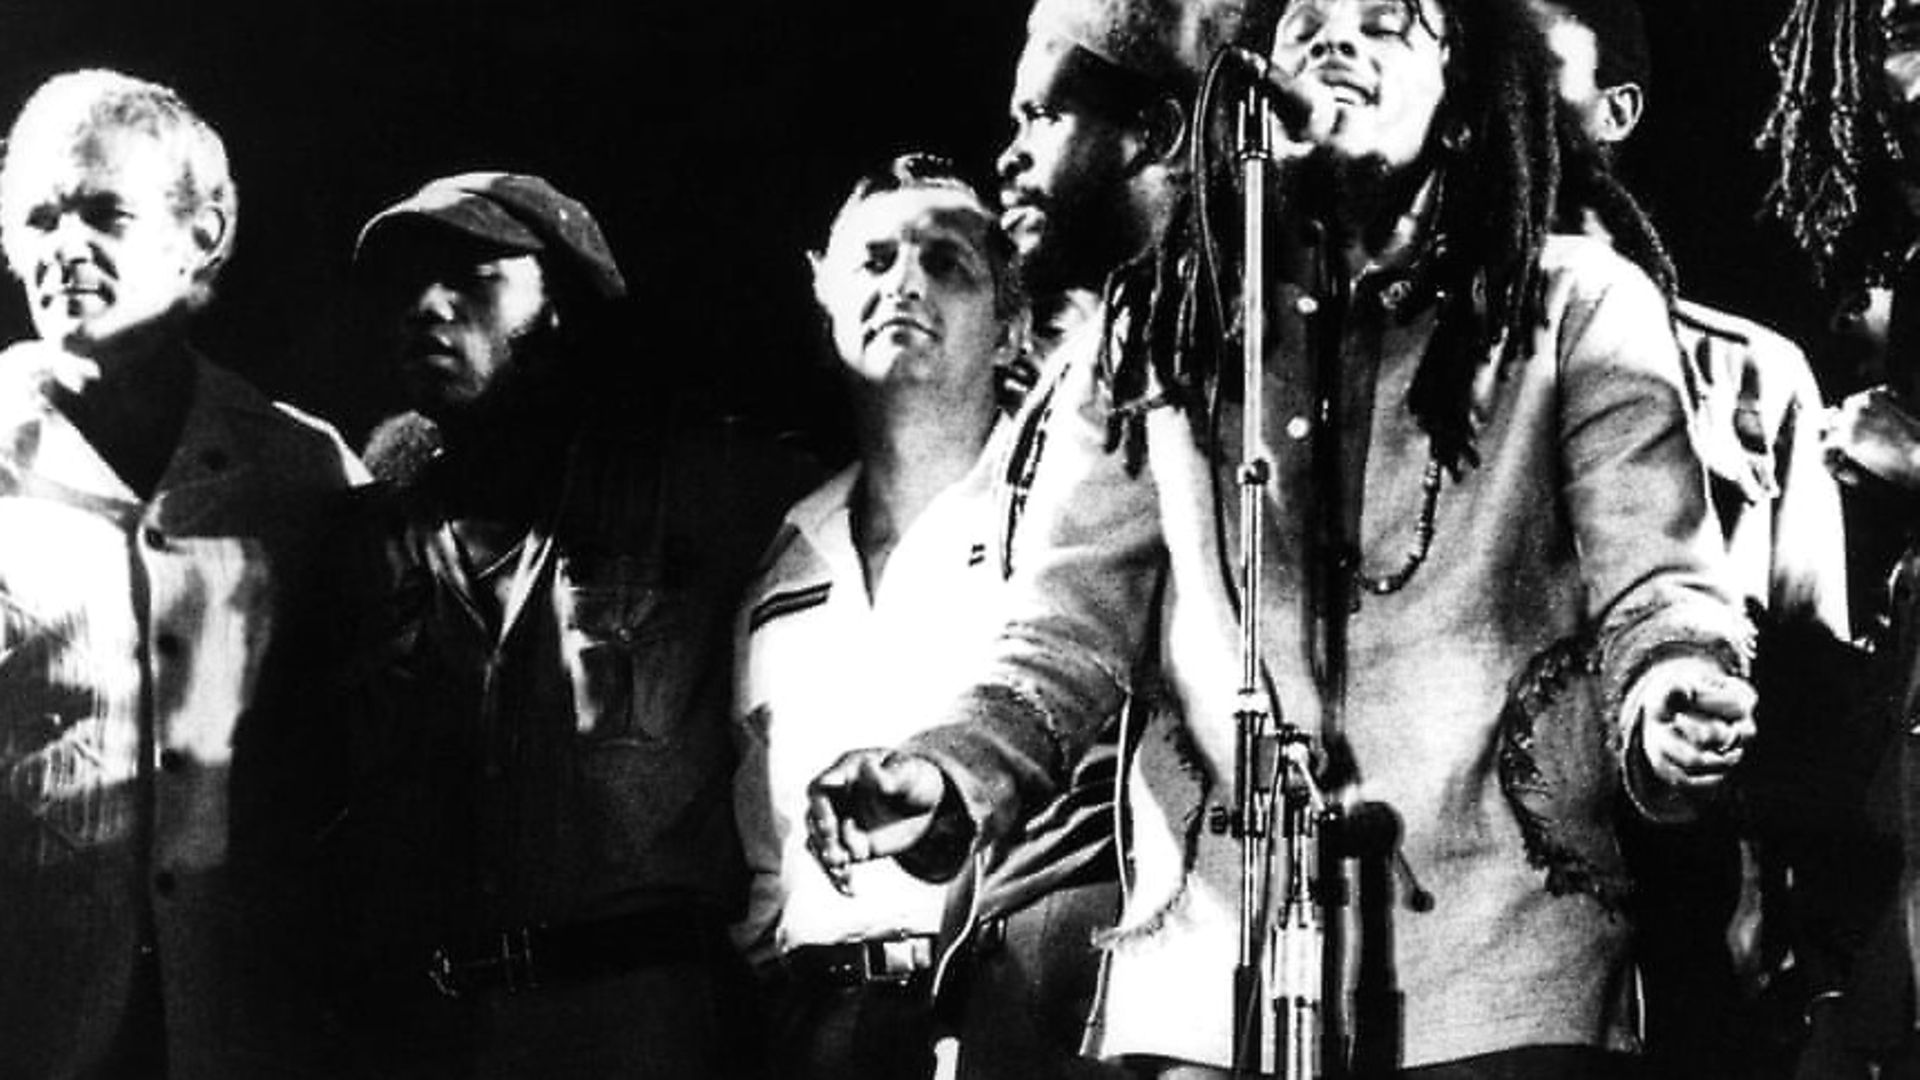 Bob Marley brought together the Jamaican prime minister Michael Manley (far left) and his political opponent Edward Seaga (third from left), together for a show of unity on stage at the 1978 One Love Peace concert in Kingston, Jamaica. Photograph: Echoes/Redferns - Credit: Archant